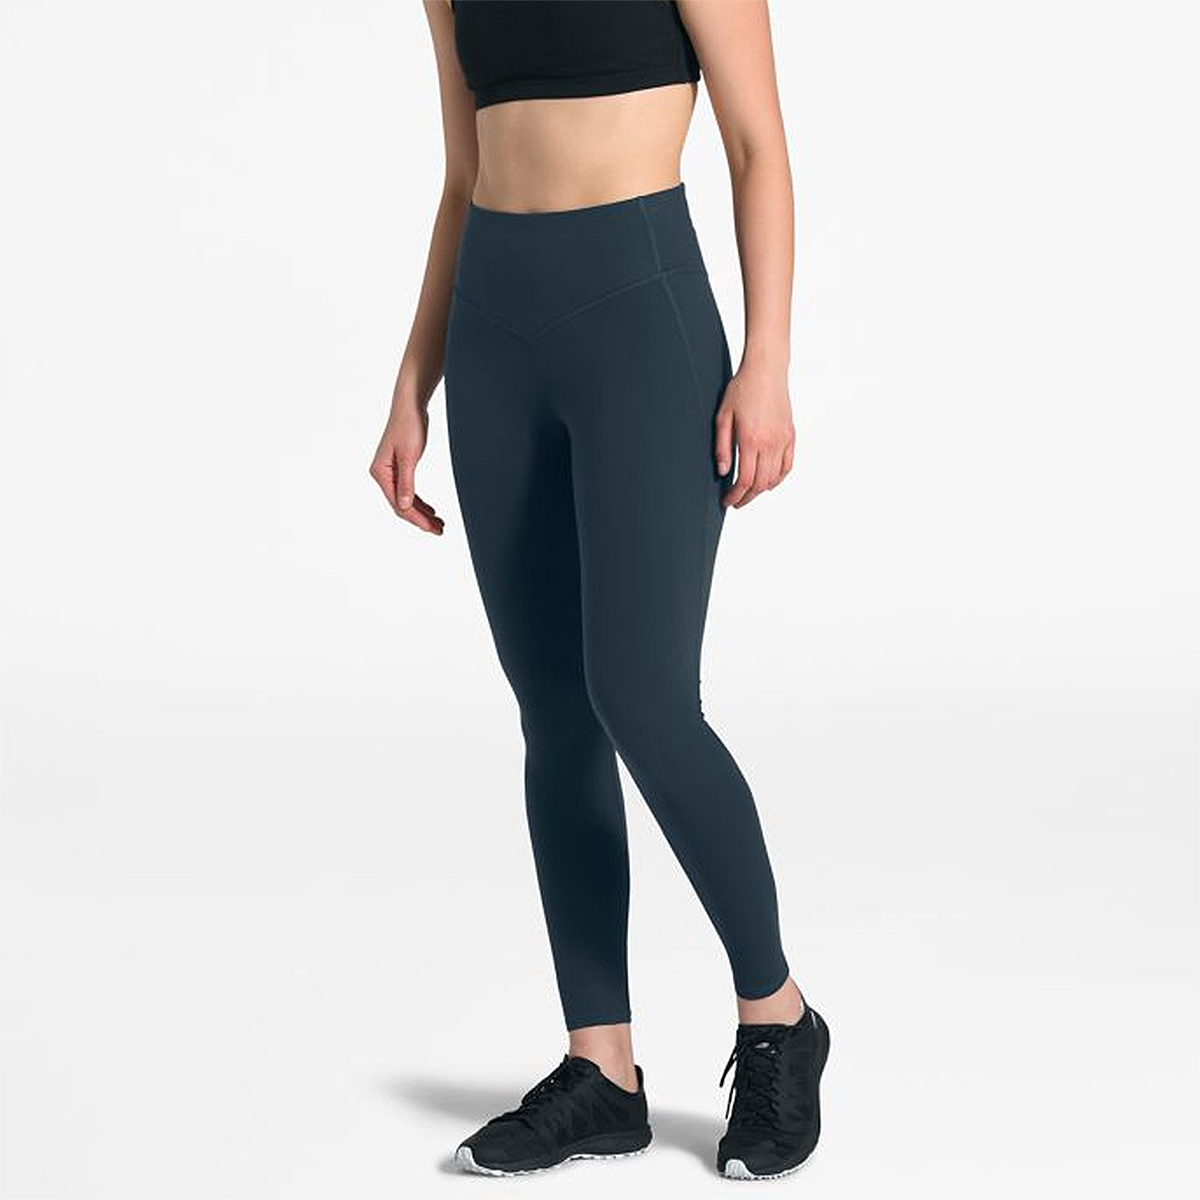 north-face-leggings-tights